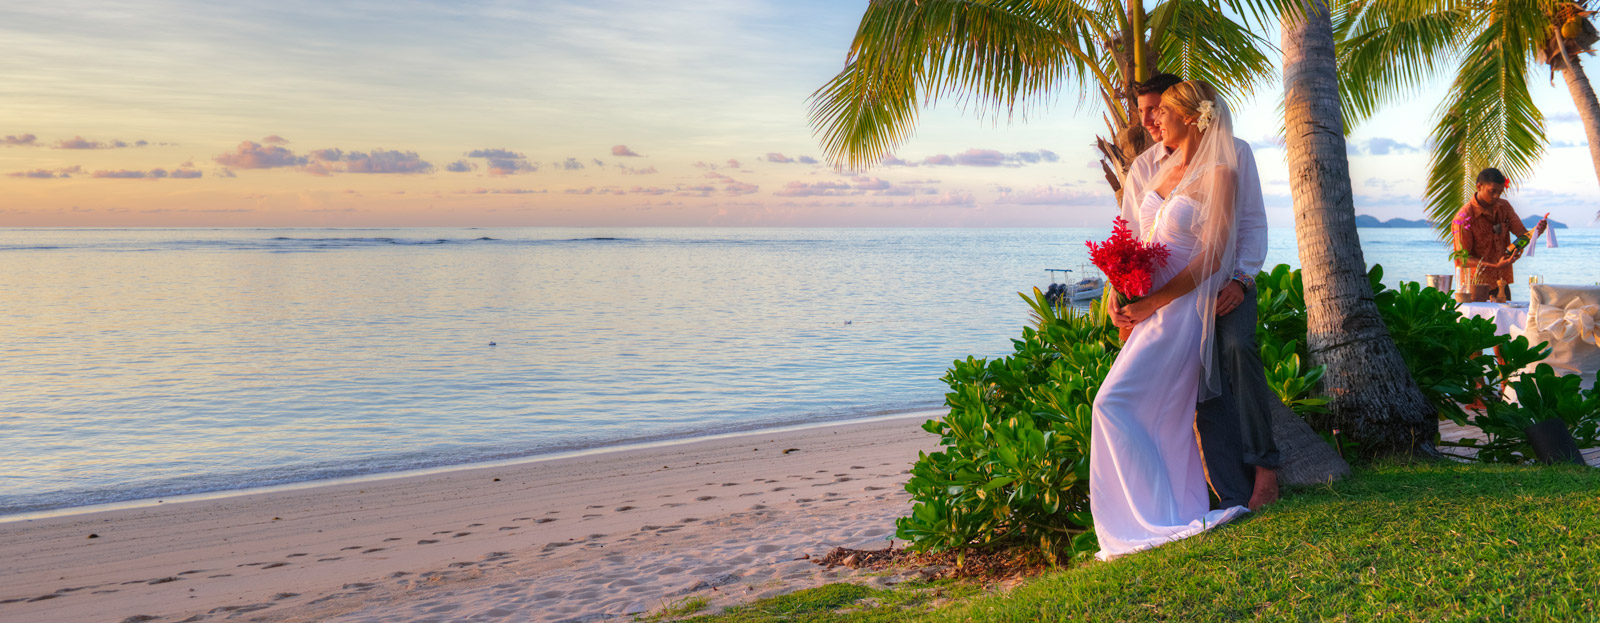 fiji wedding packages 2018